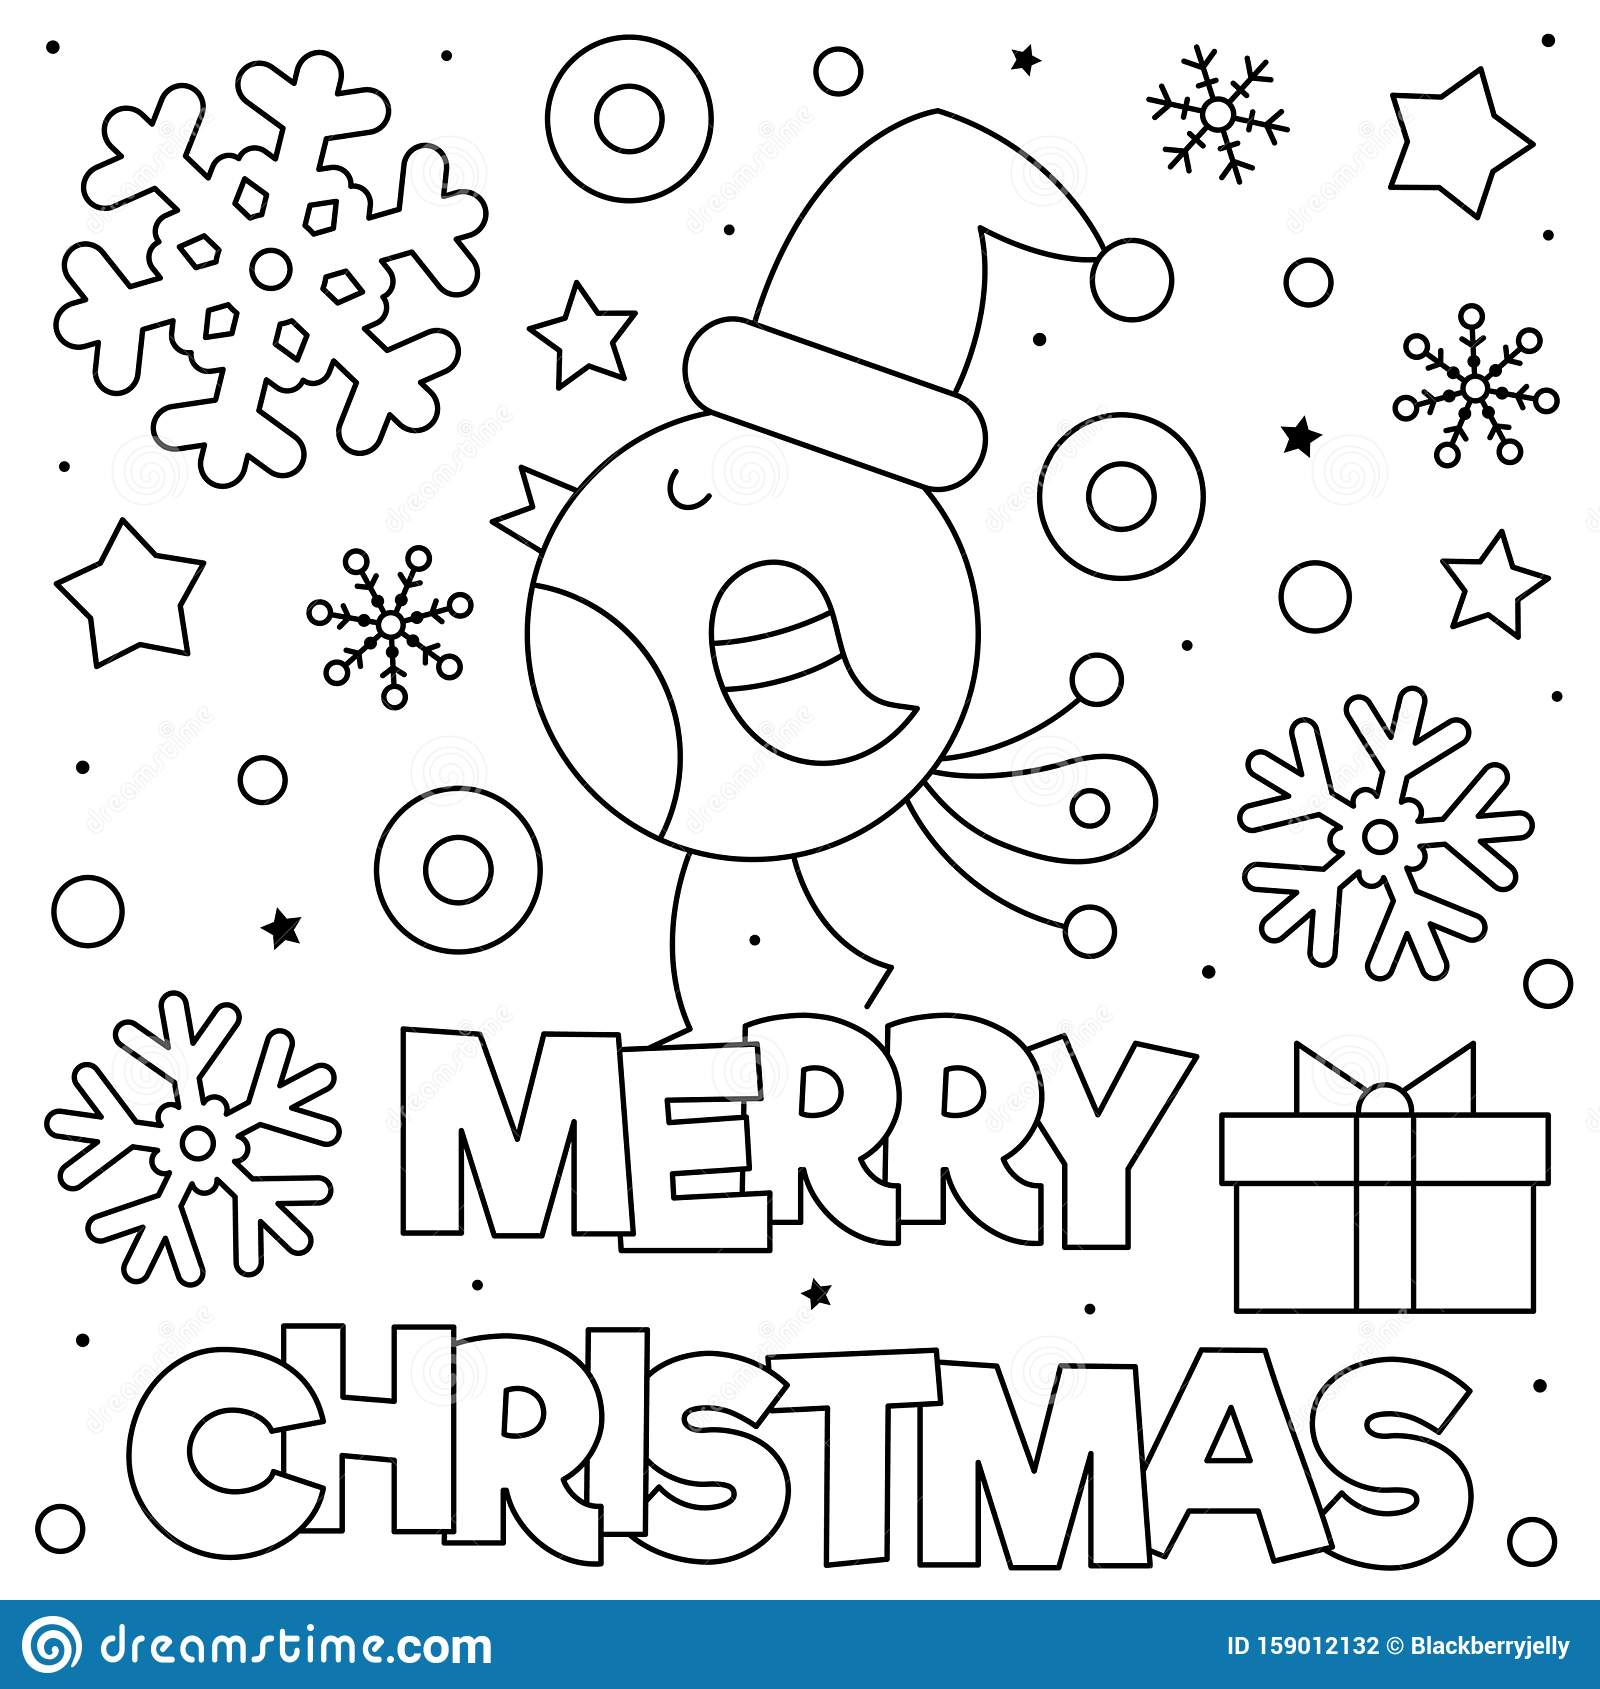 Merry Christmas Coloring Page Black And White Vector Illustration Stock Vector Illustration Of Merry Black 159012132